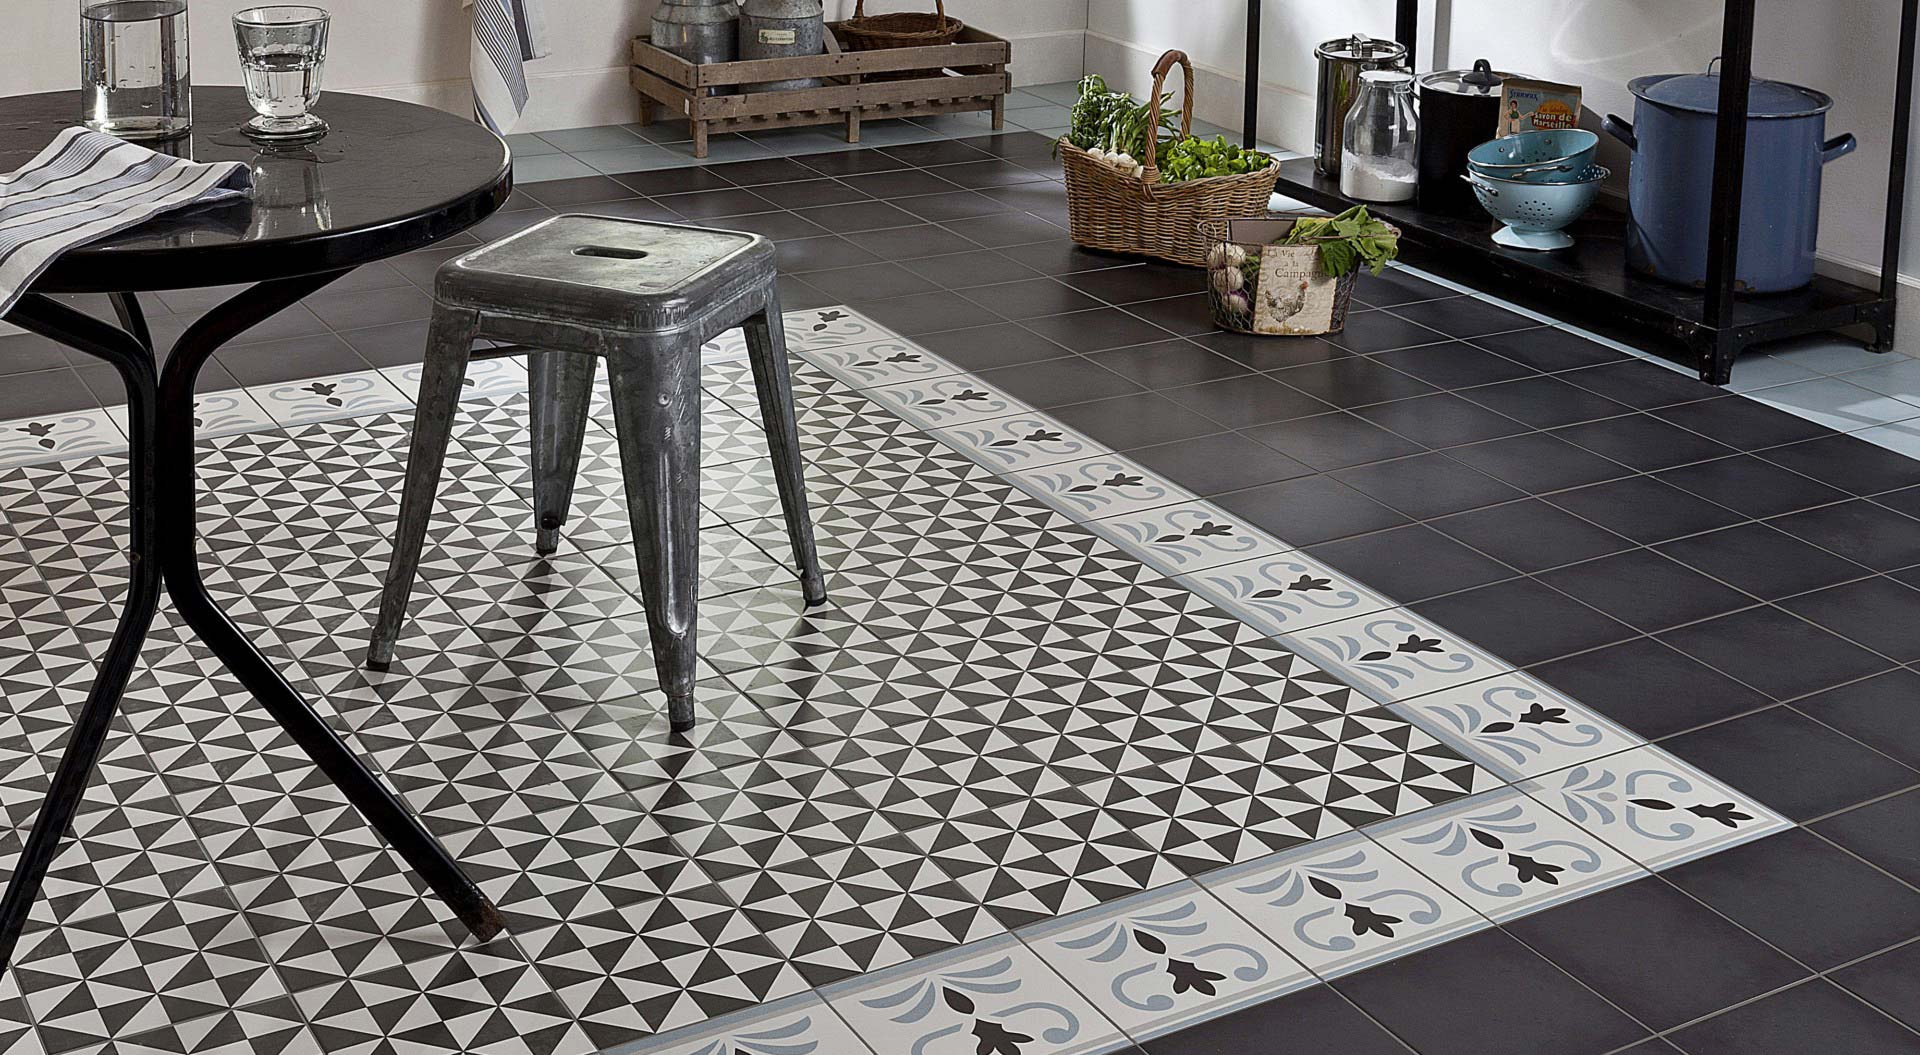 Tapis en carreaux ciment - Tapis carreaux de ciment ...